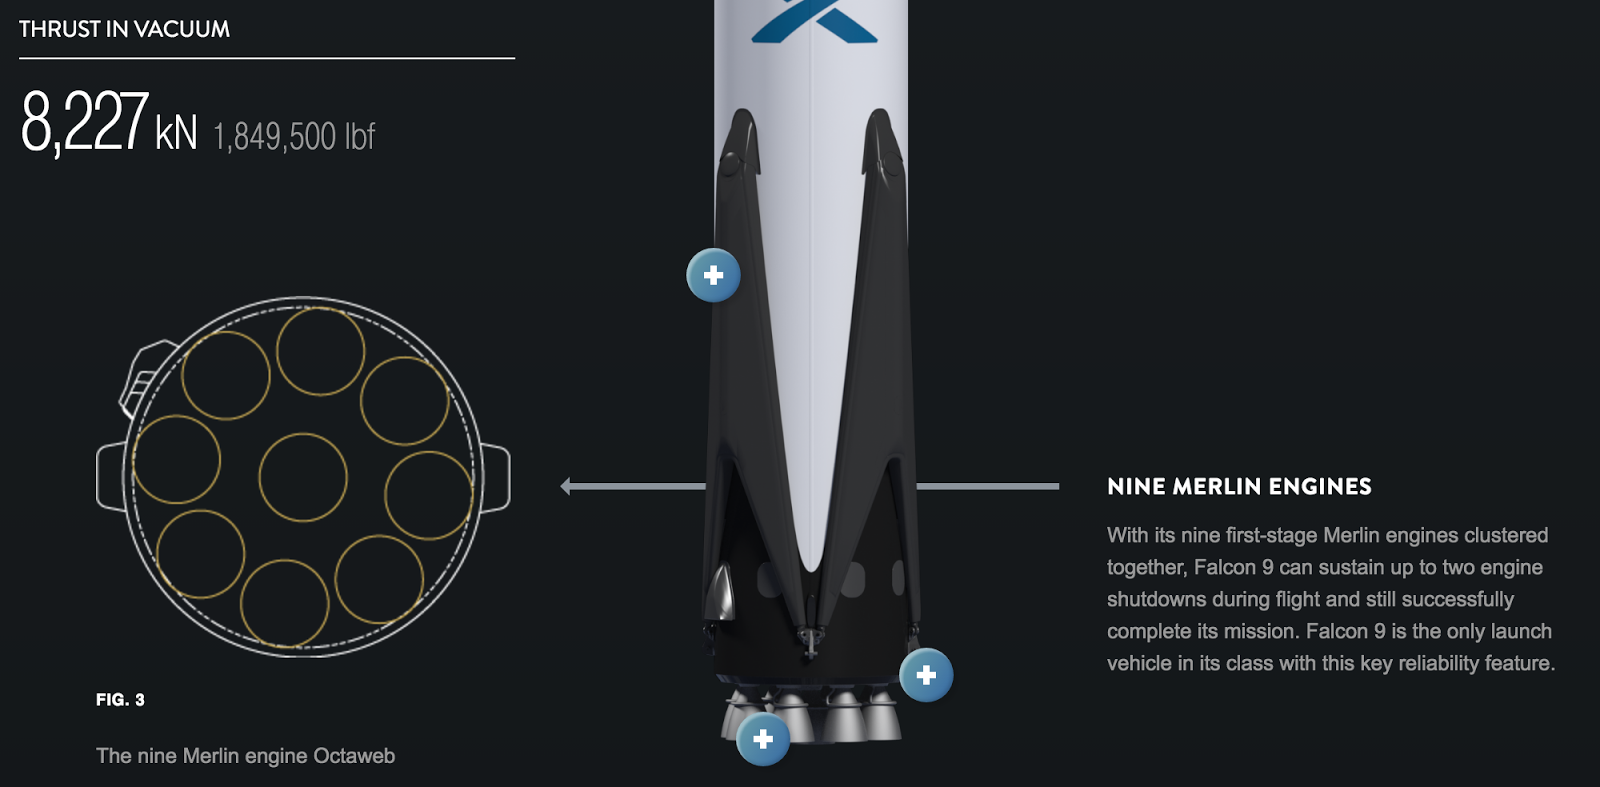 Spacex Falcon 9 launch payload increased by 73% to 22,800 ...